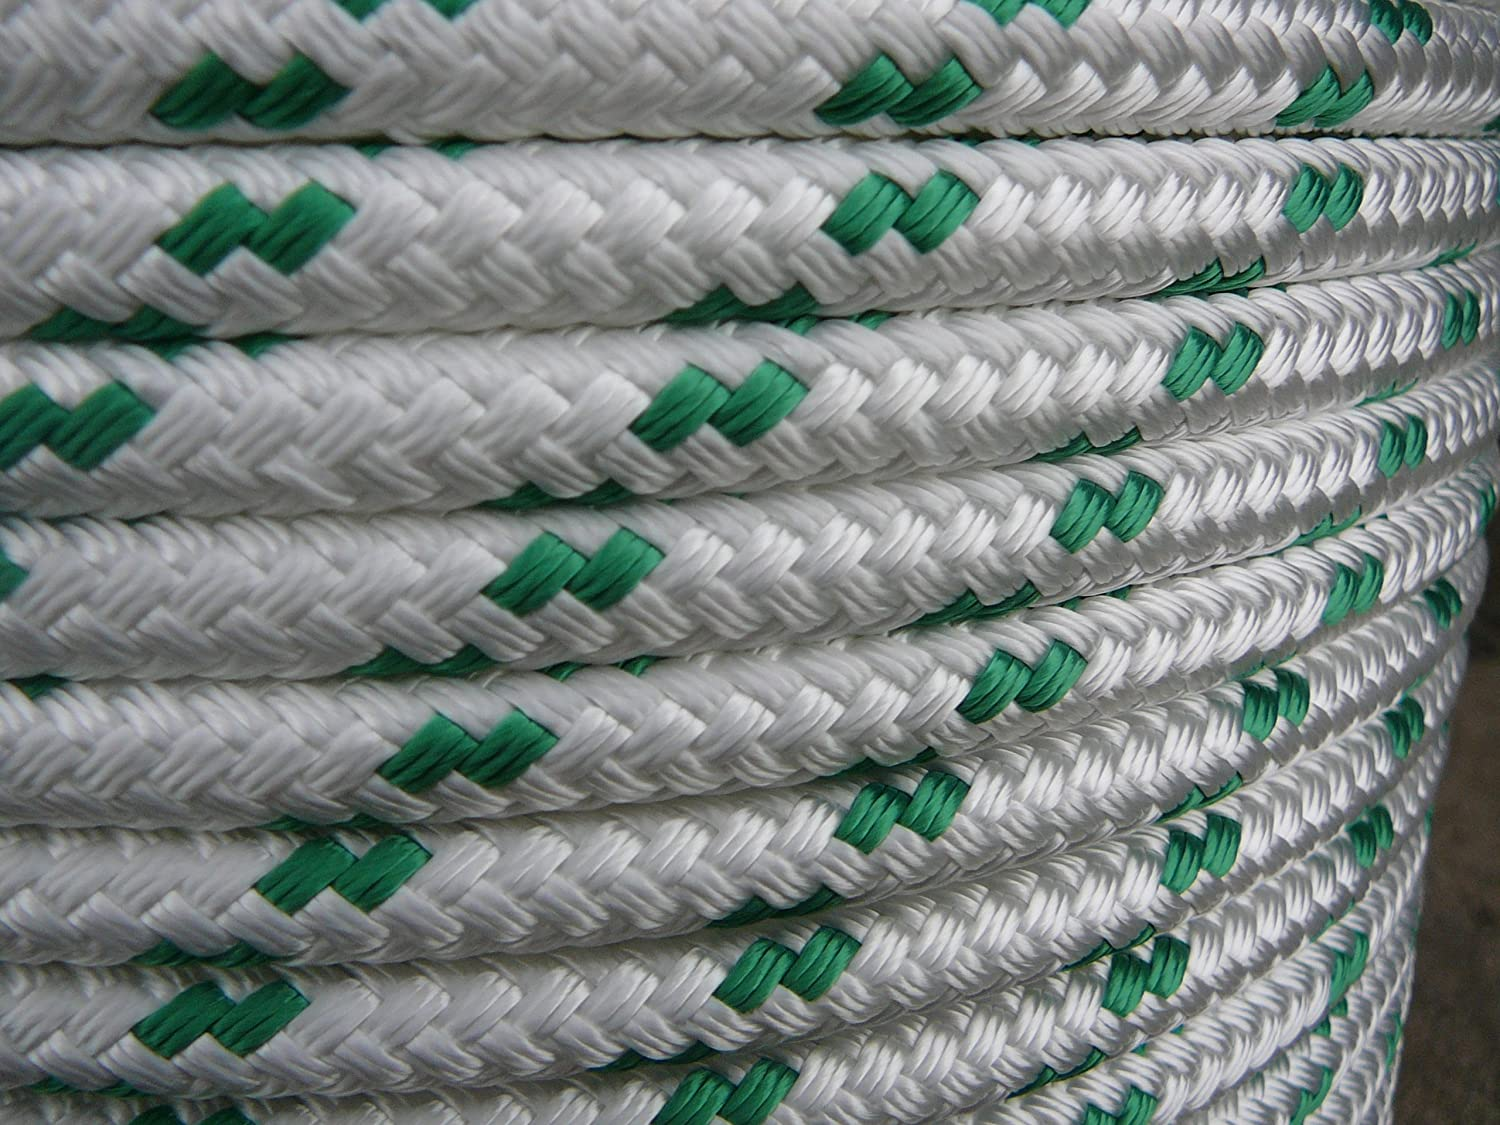 Double Braid Polyester line 7//16x150 ft yacht braid green tracer halyard sheet